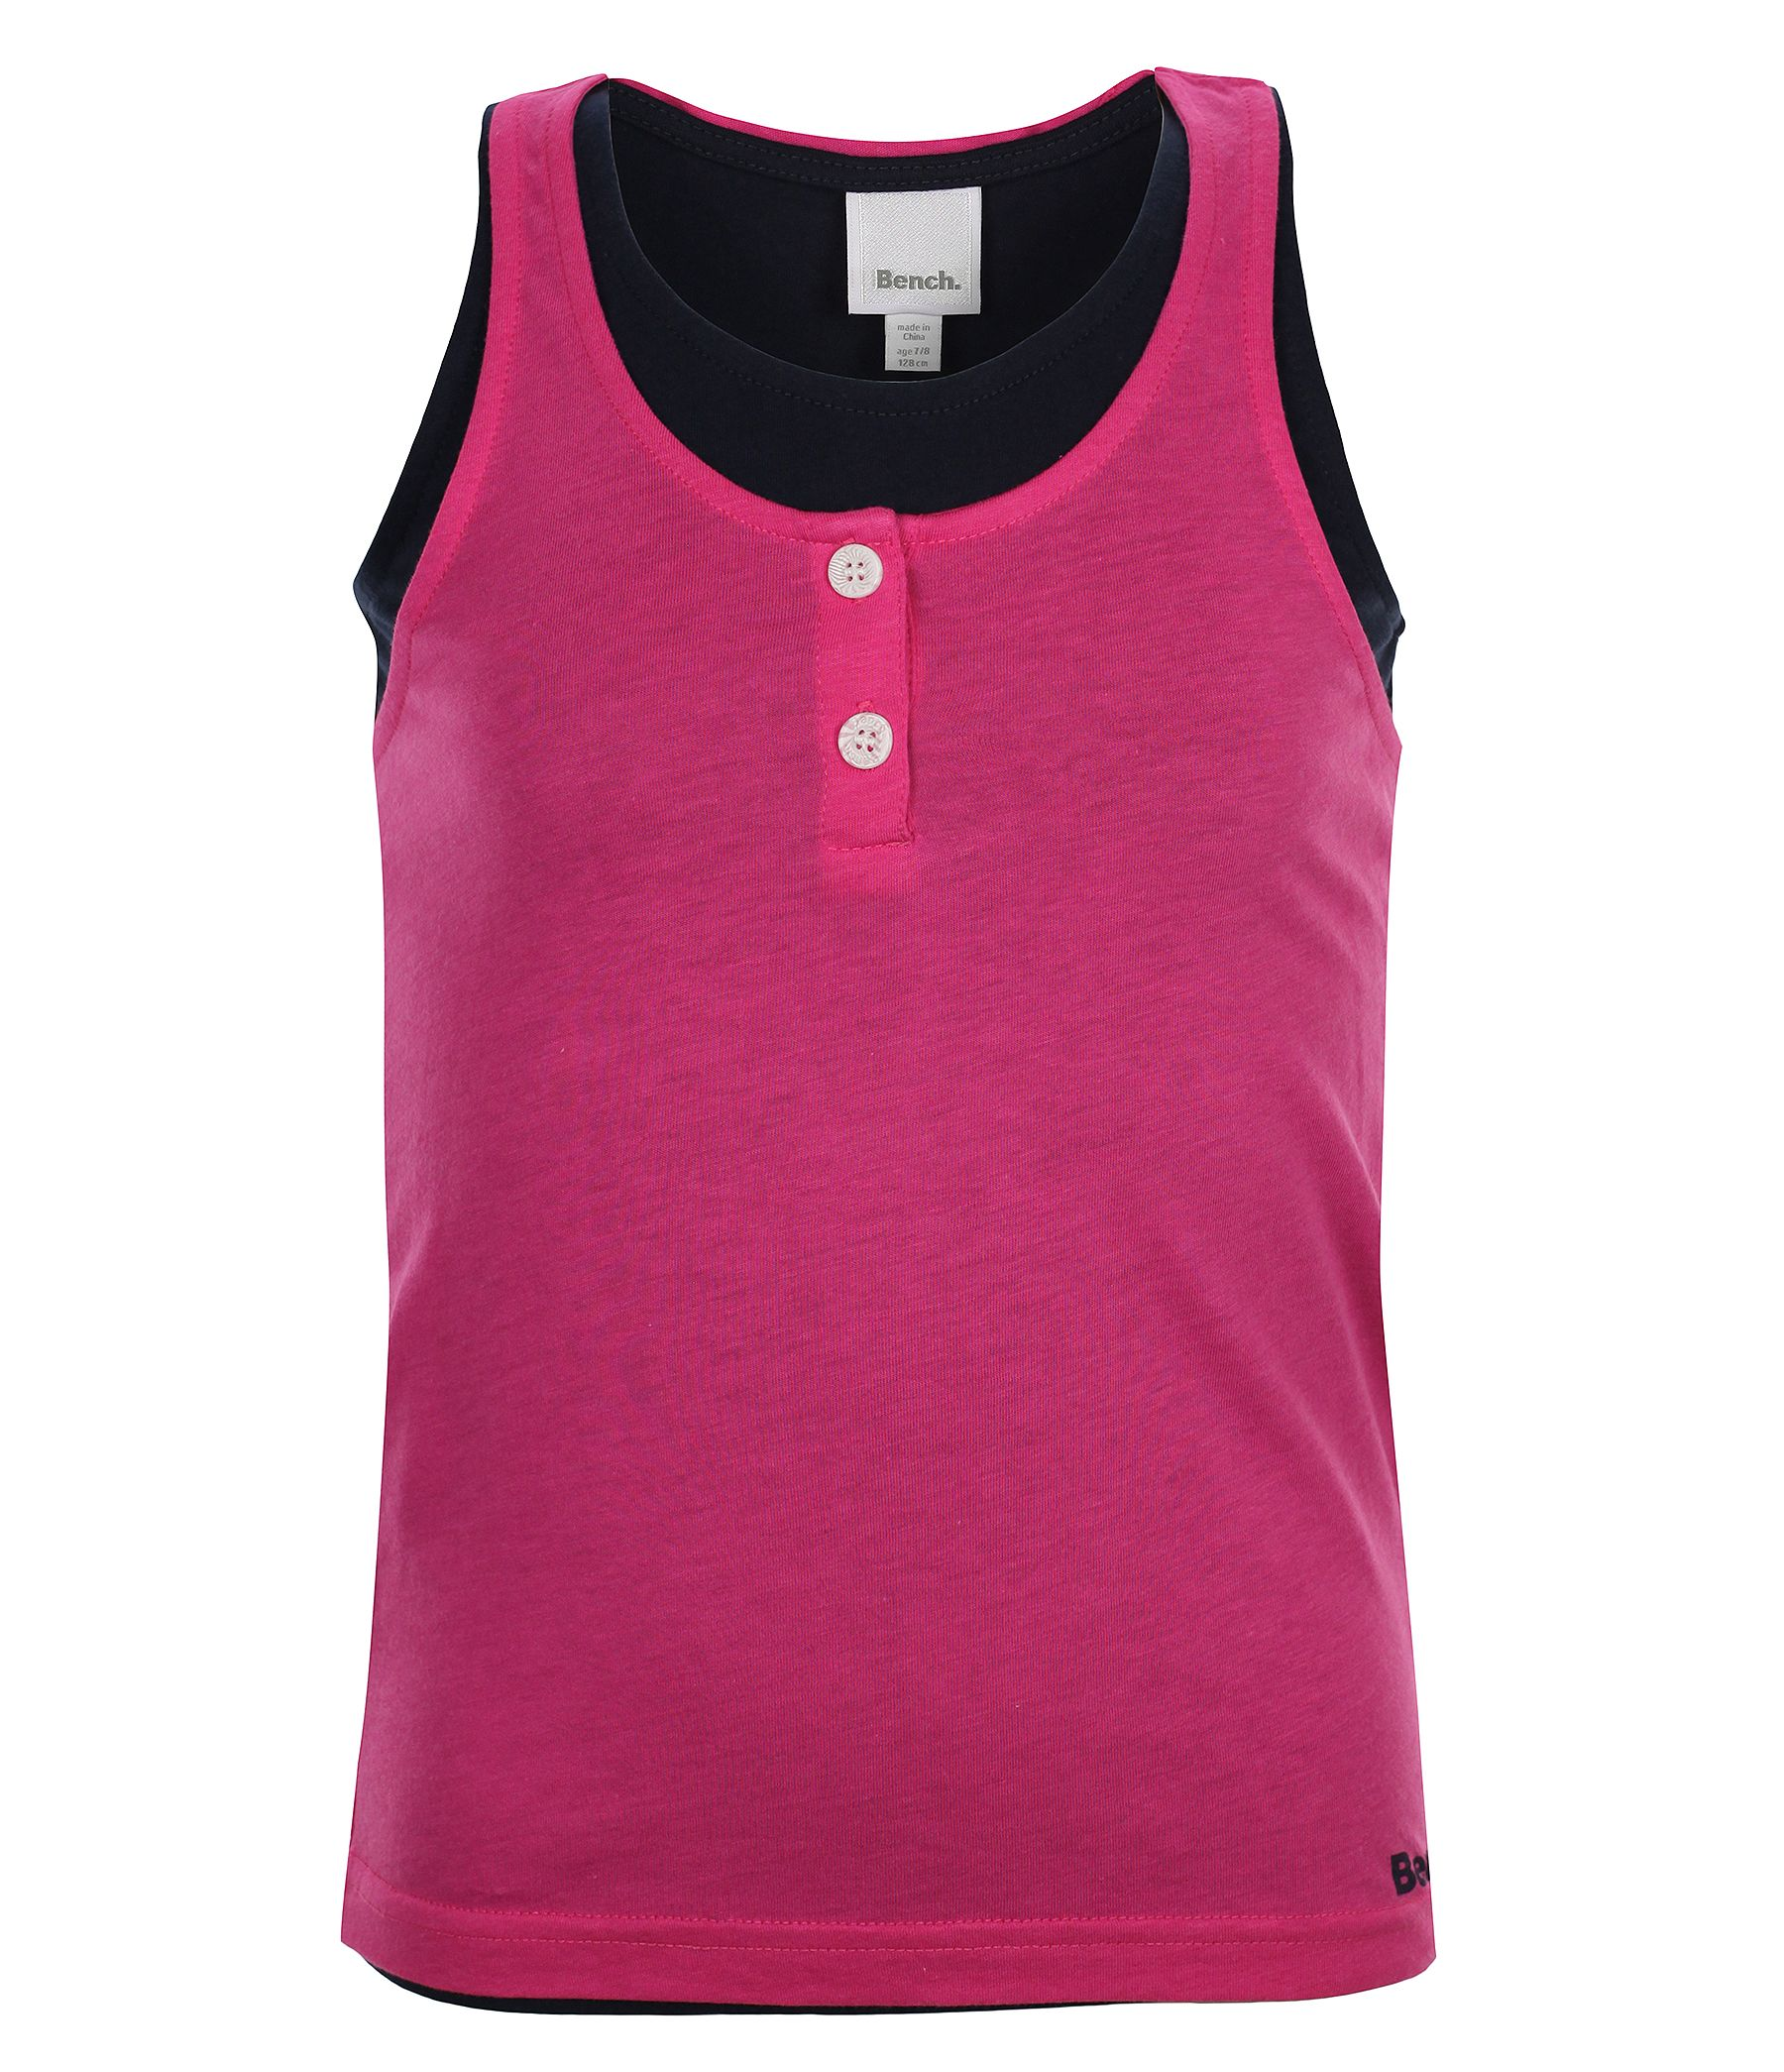 Girls versavice b double layered vest top